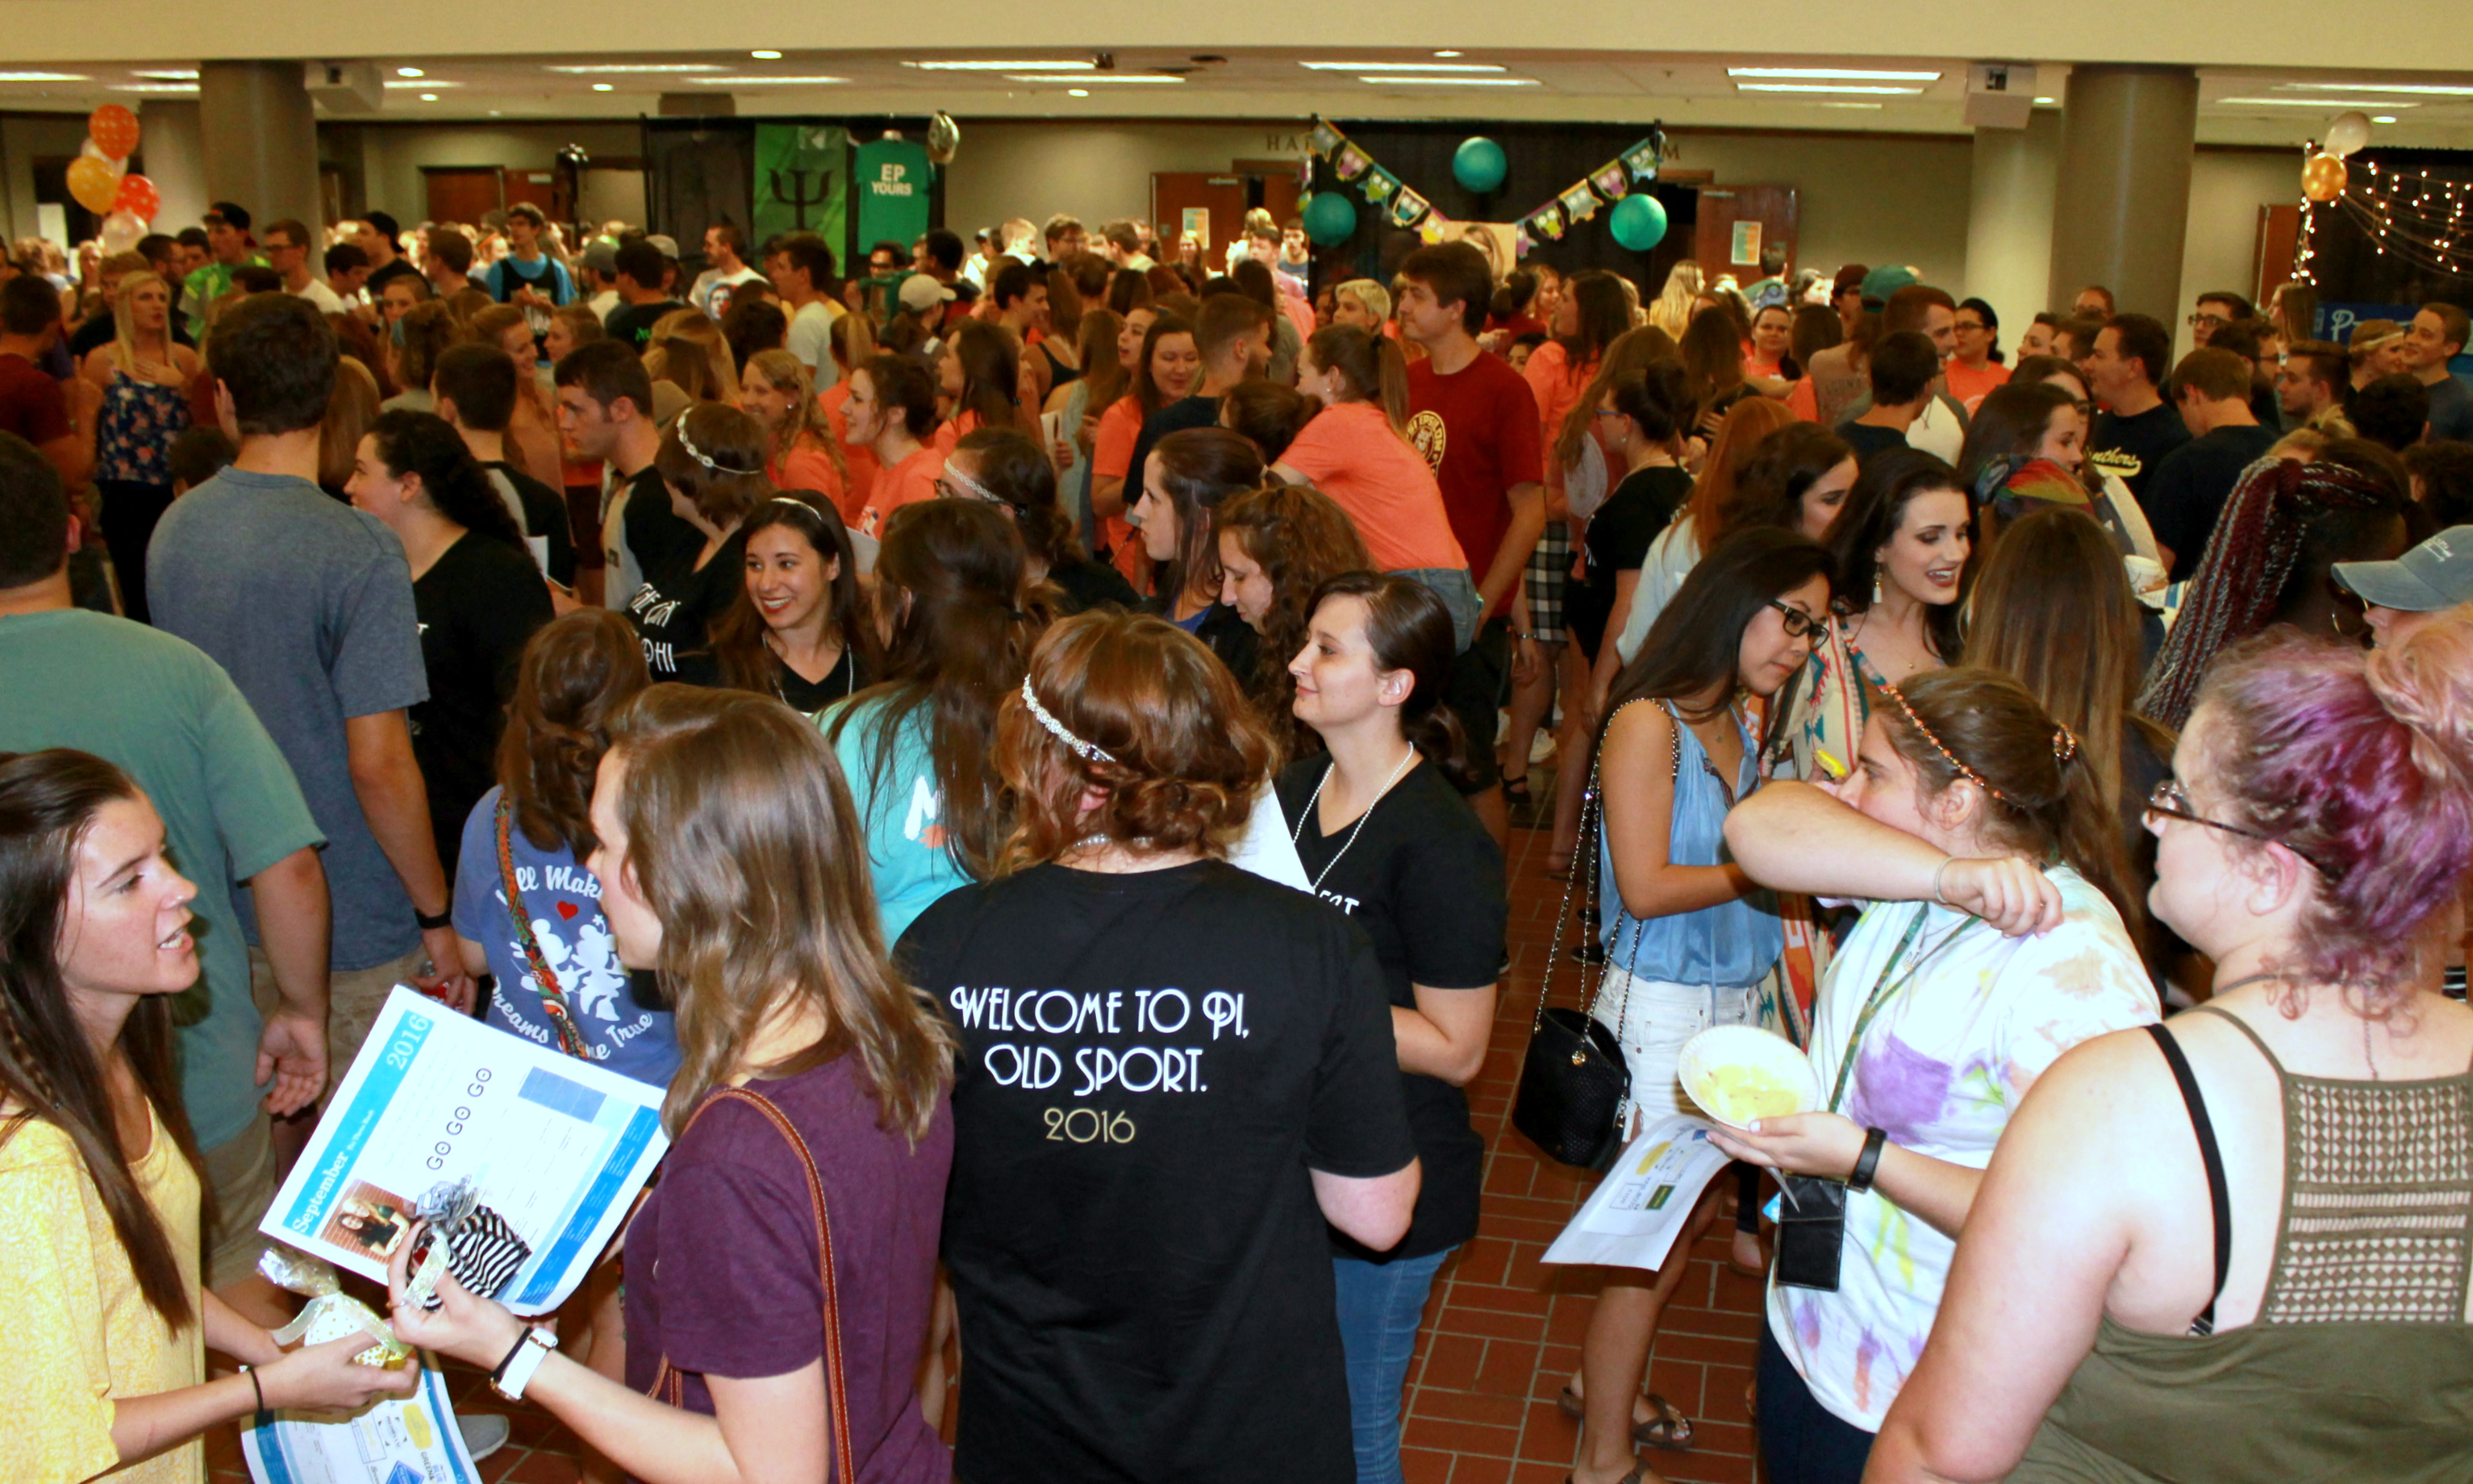 Potential rushees mingling in the Conservatory during Club Night. Photo by Allyson Hazelrigg.